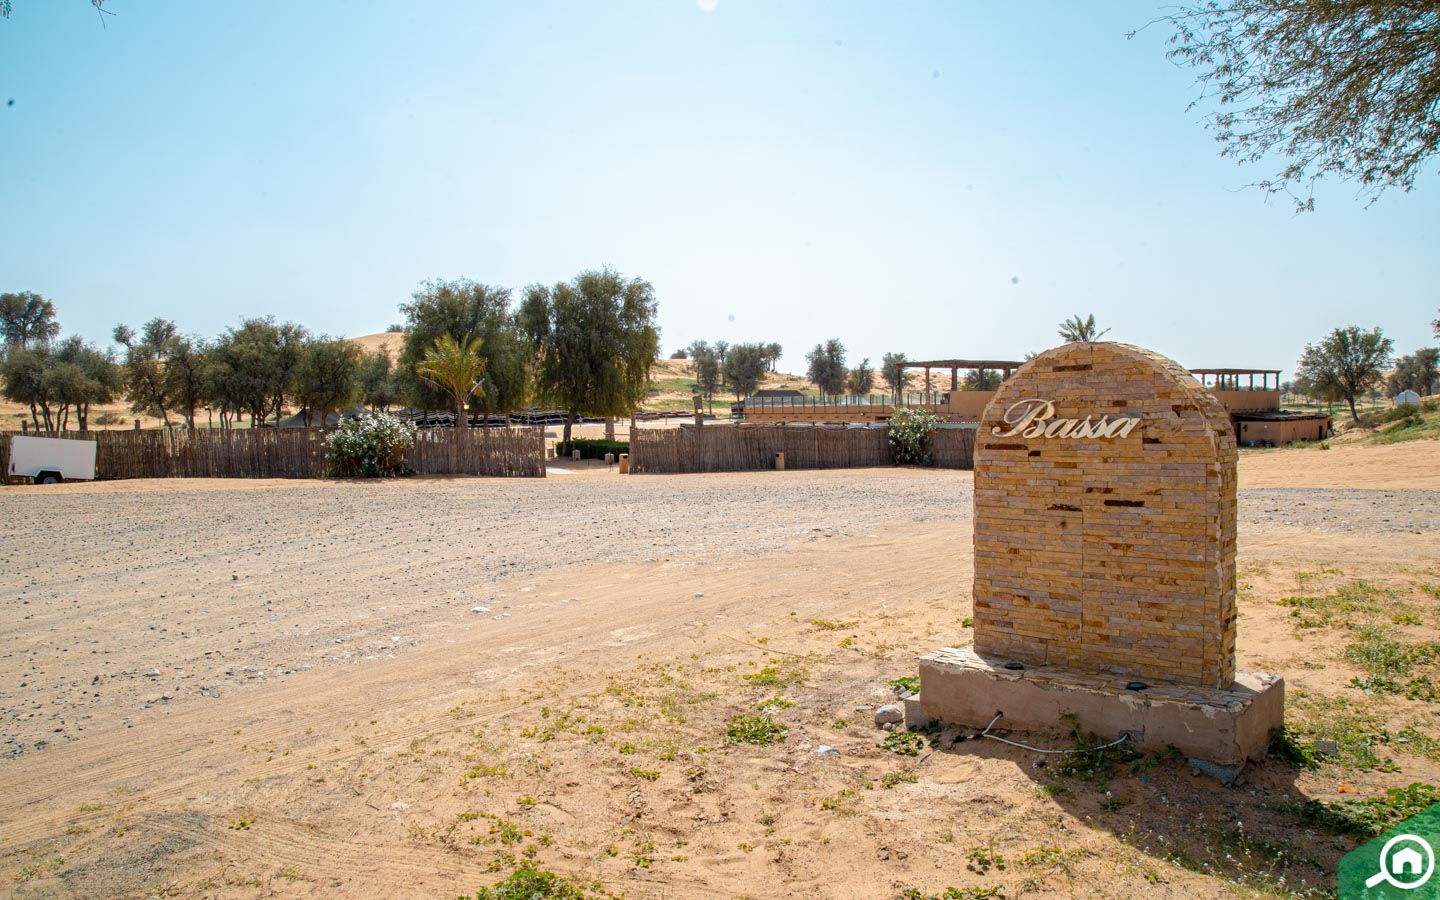 Entrance to Bassata Village RAK